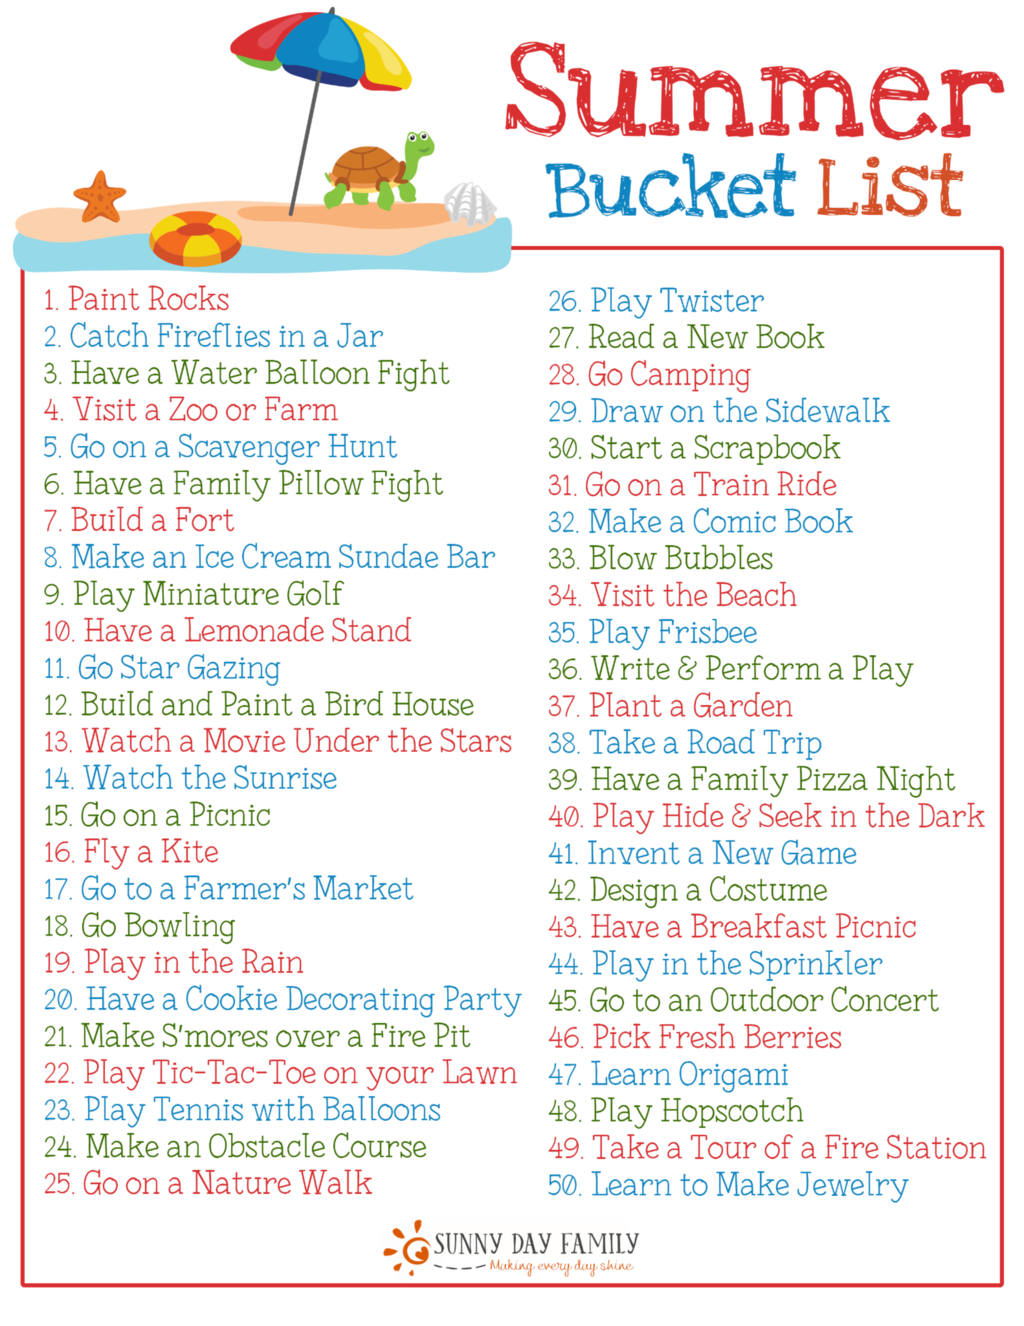 50 Summer Fun Ideas For Kids With A Free Printable Summer Bucket List